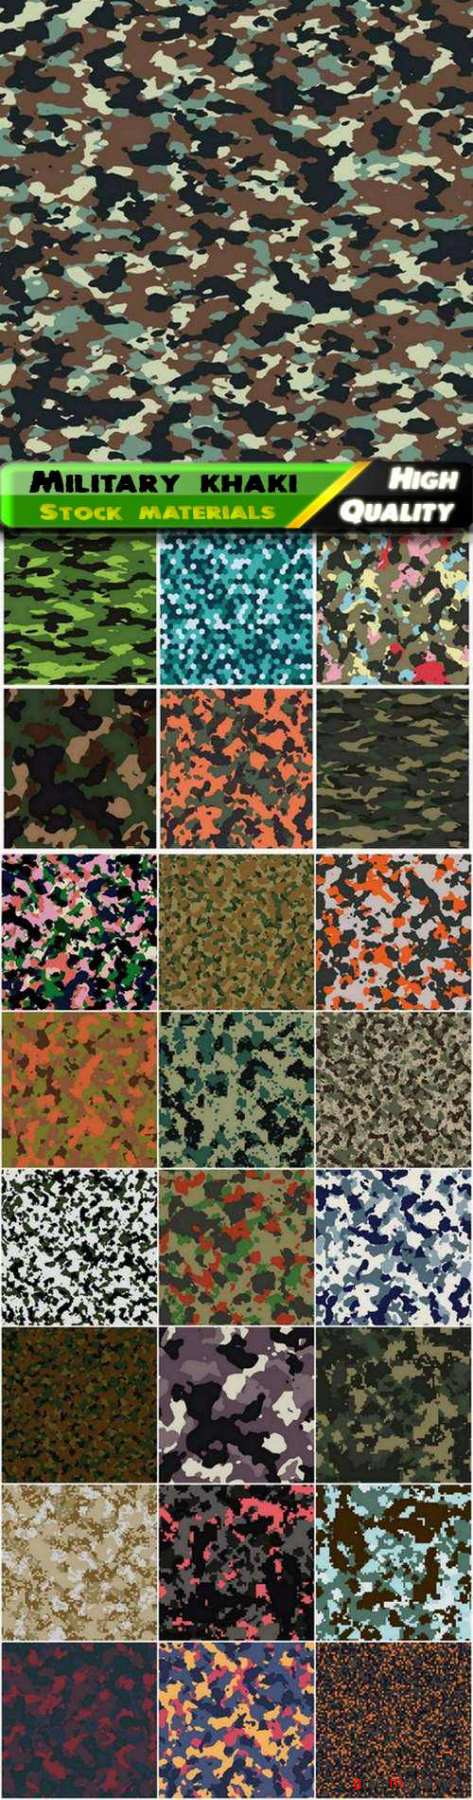 Military seamless patterns color of khaki for army camouflage - 25 Eps